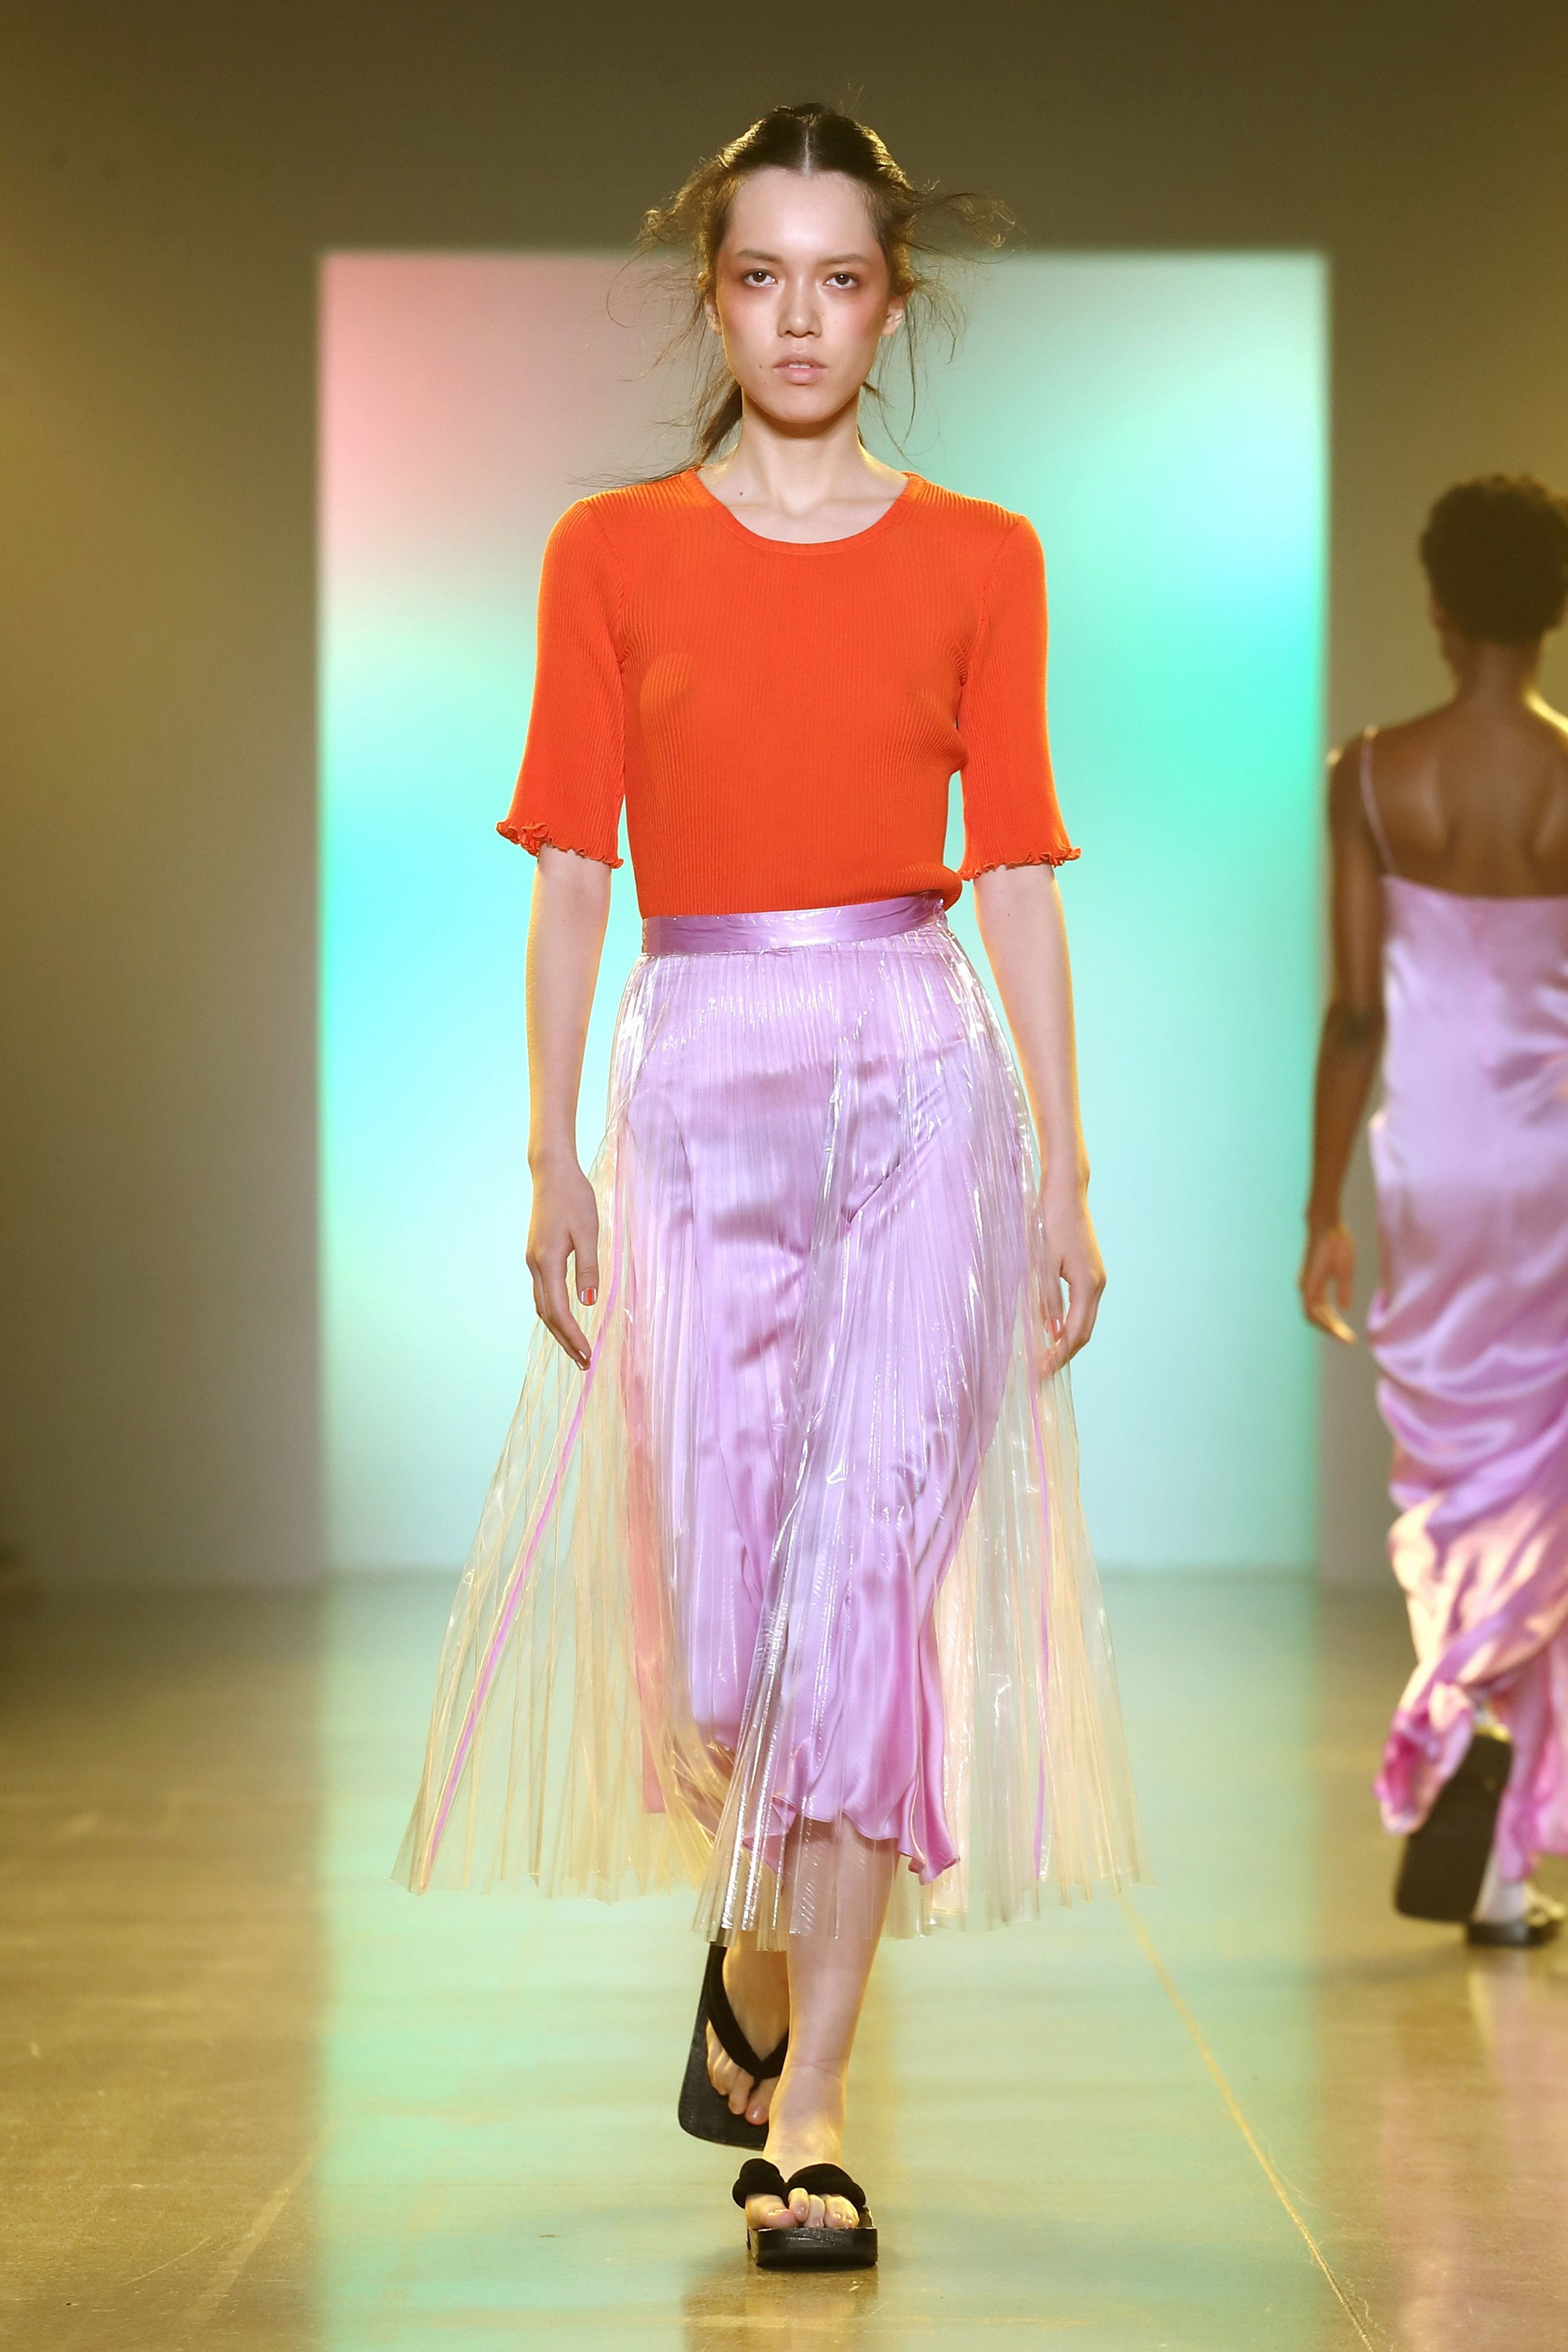 00022-priscavera-collection-spring-2019-ready-to-wear.jpg